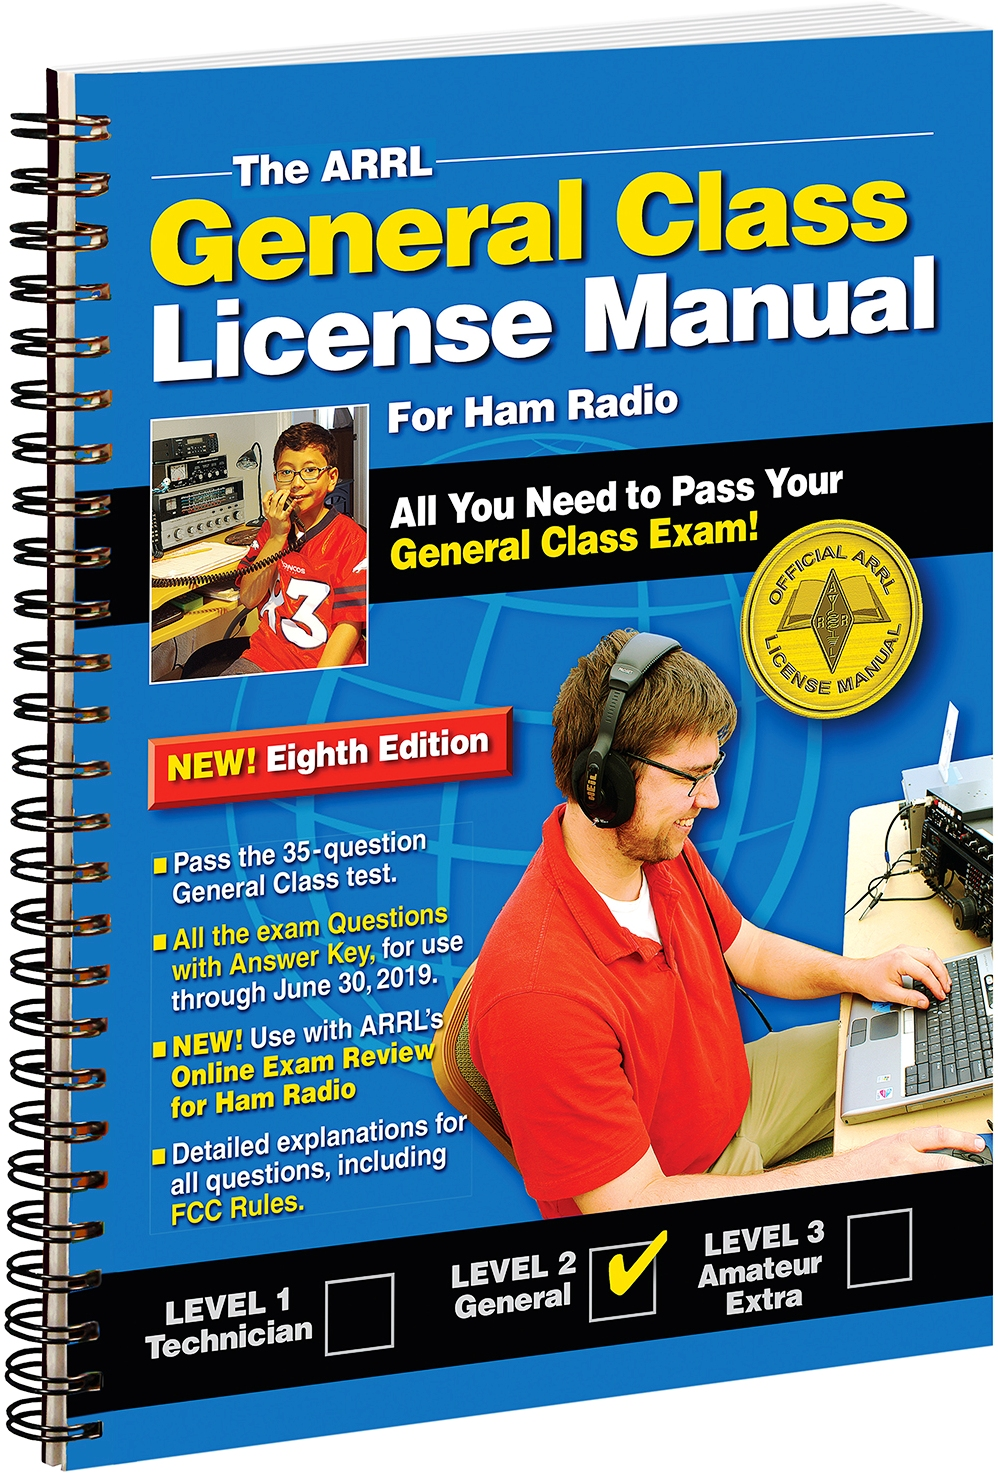 new arrl general class license manual available as softcover spiral rh arrl org arrl ham radio license manual 3rd edition pdf arrl ham radio license manual pdf